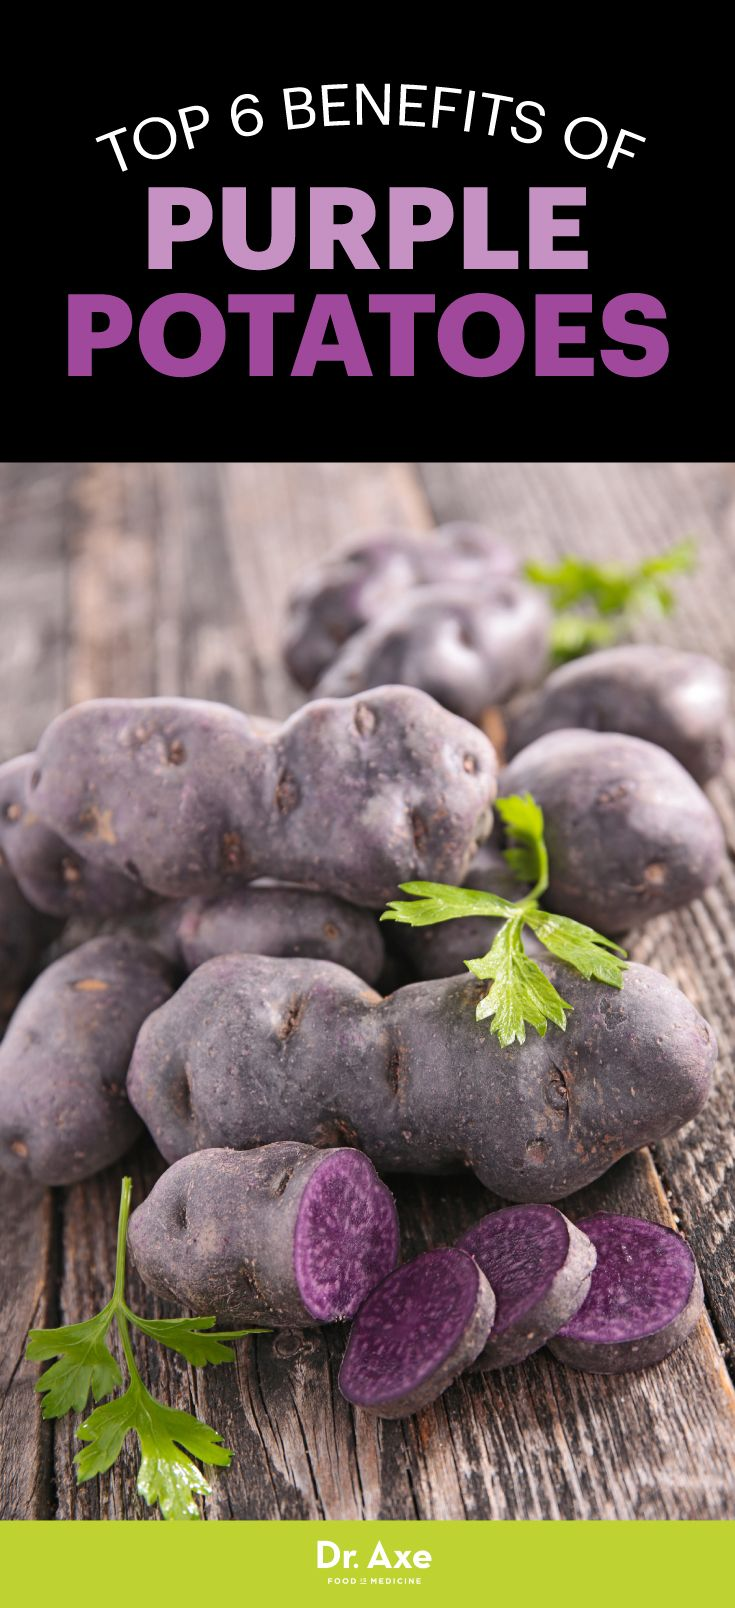 If you're a spud lover but stopped eating potatoes due to their reputation of causing weight gain, you may be in luck.